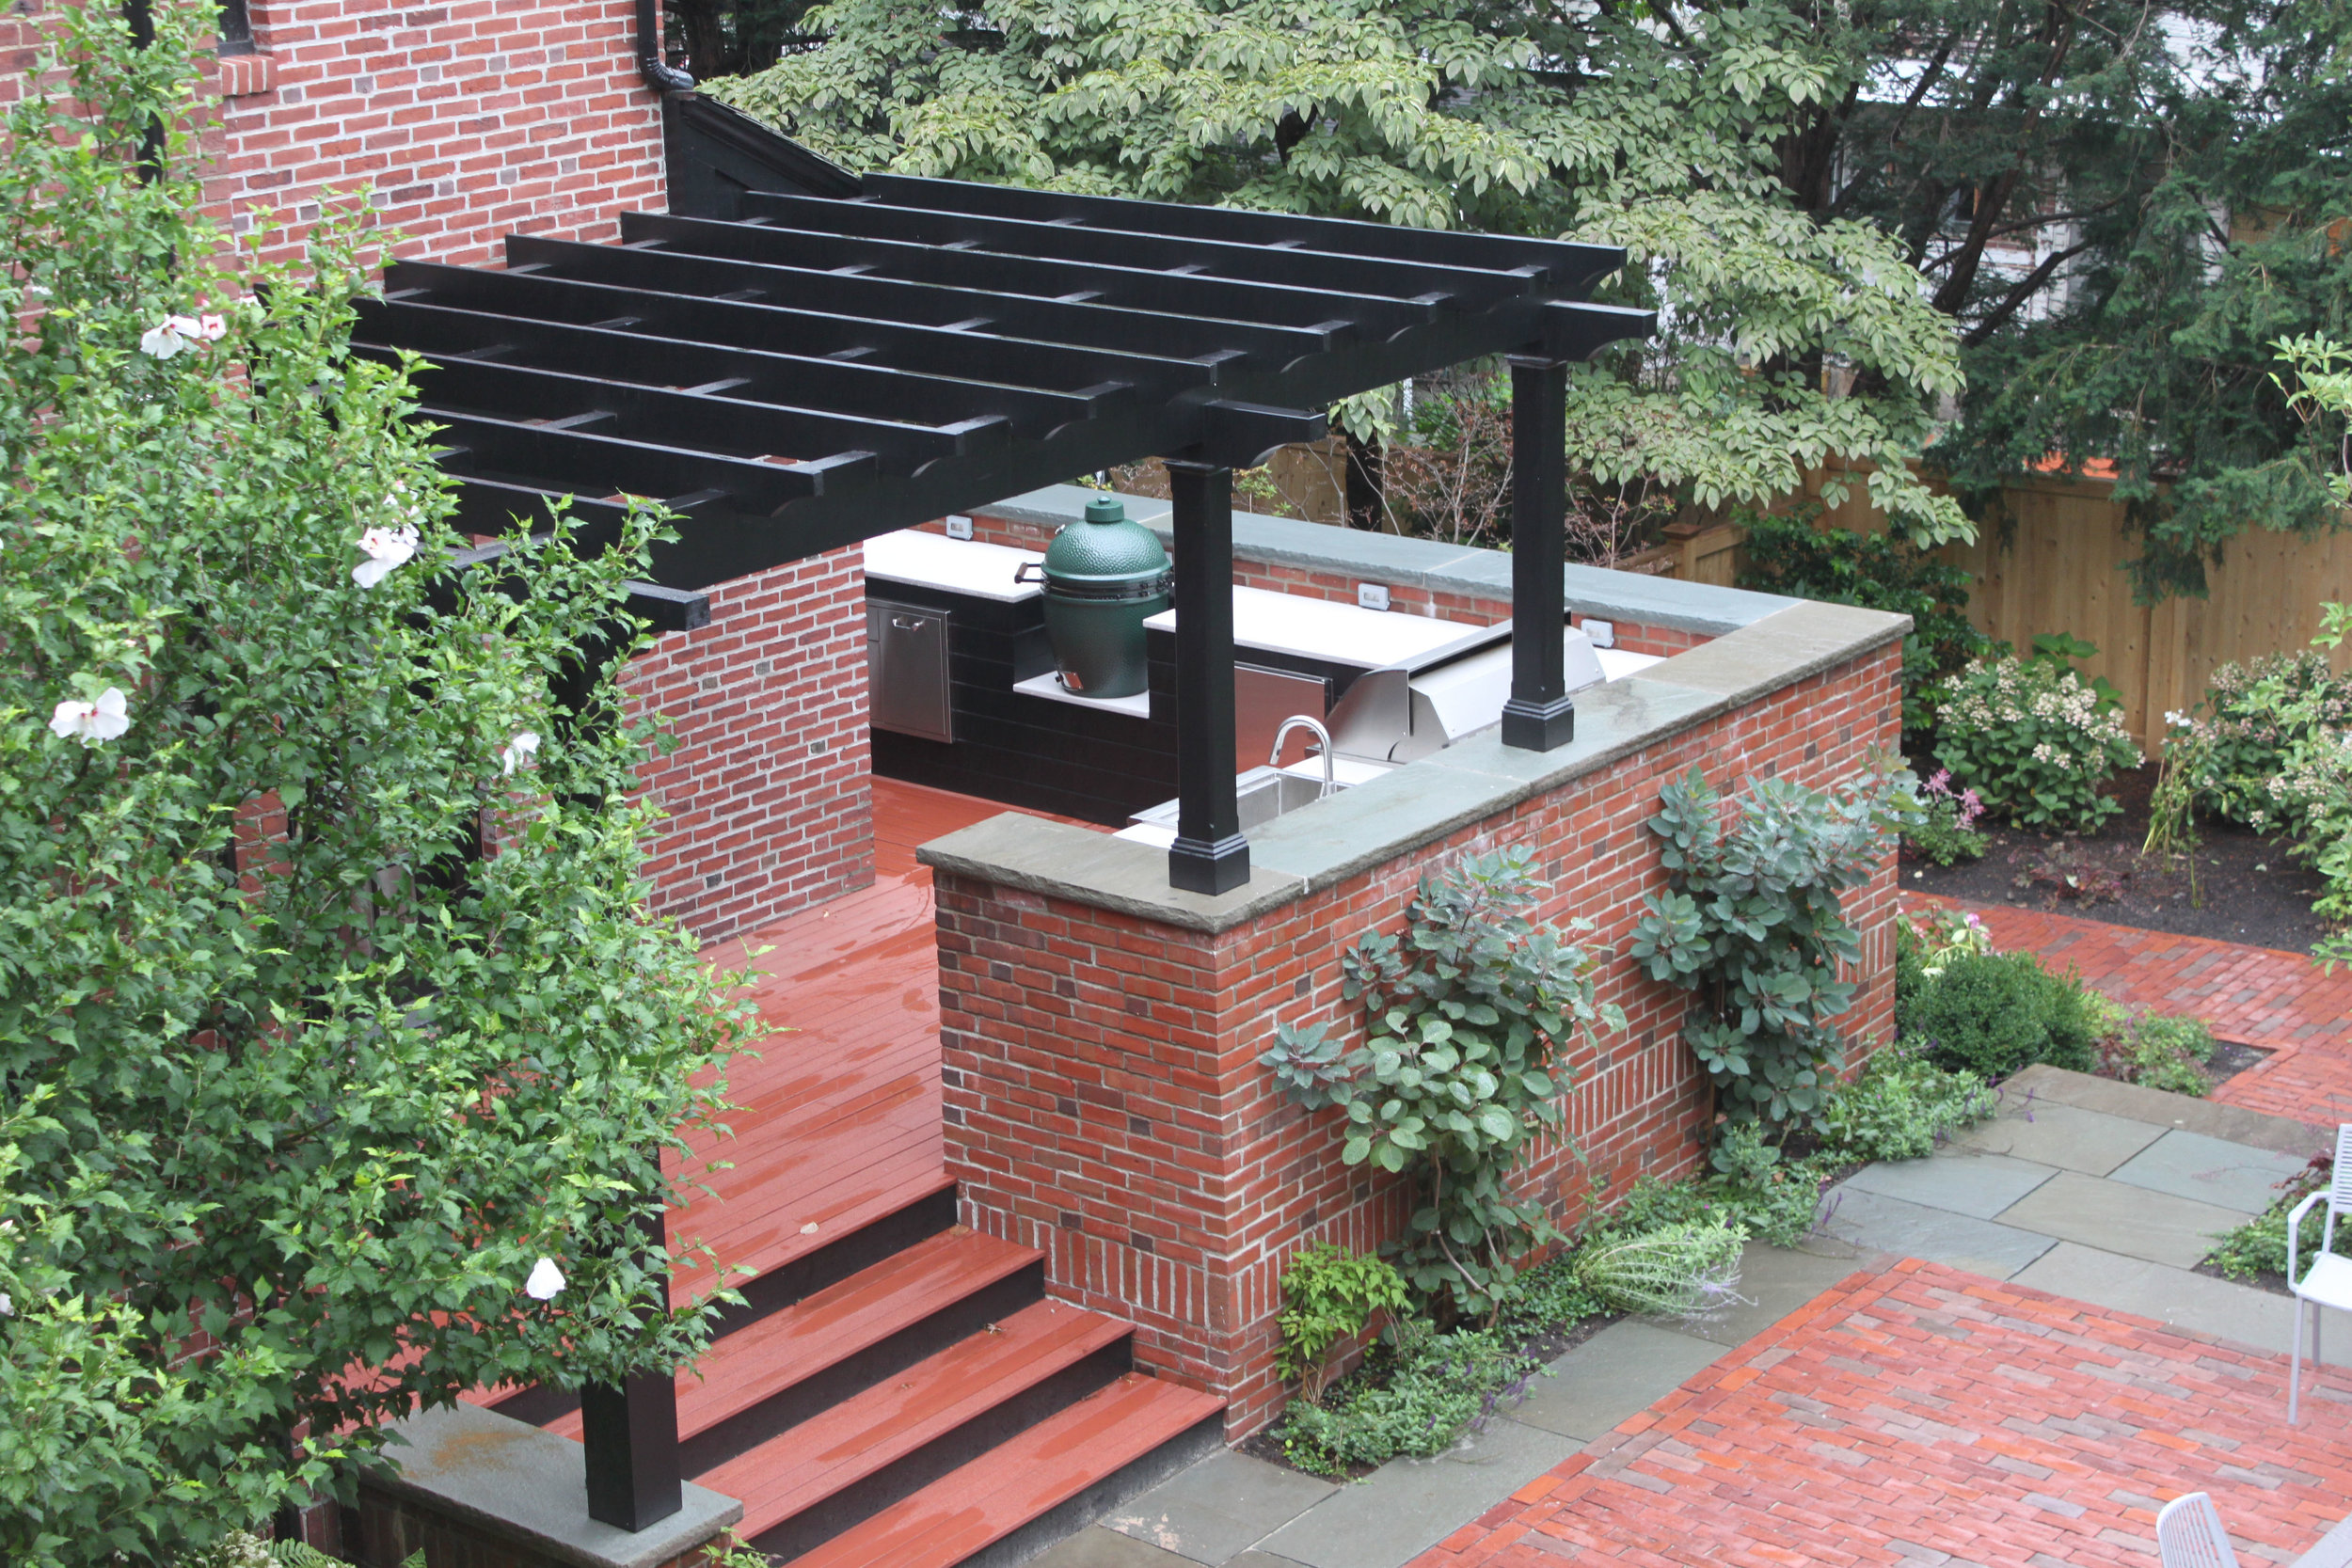 Outdoor kitchen, brick exterior,landscaping and pergola.